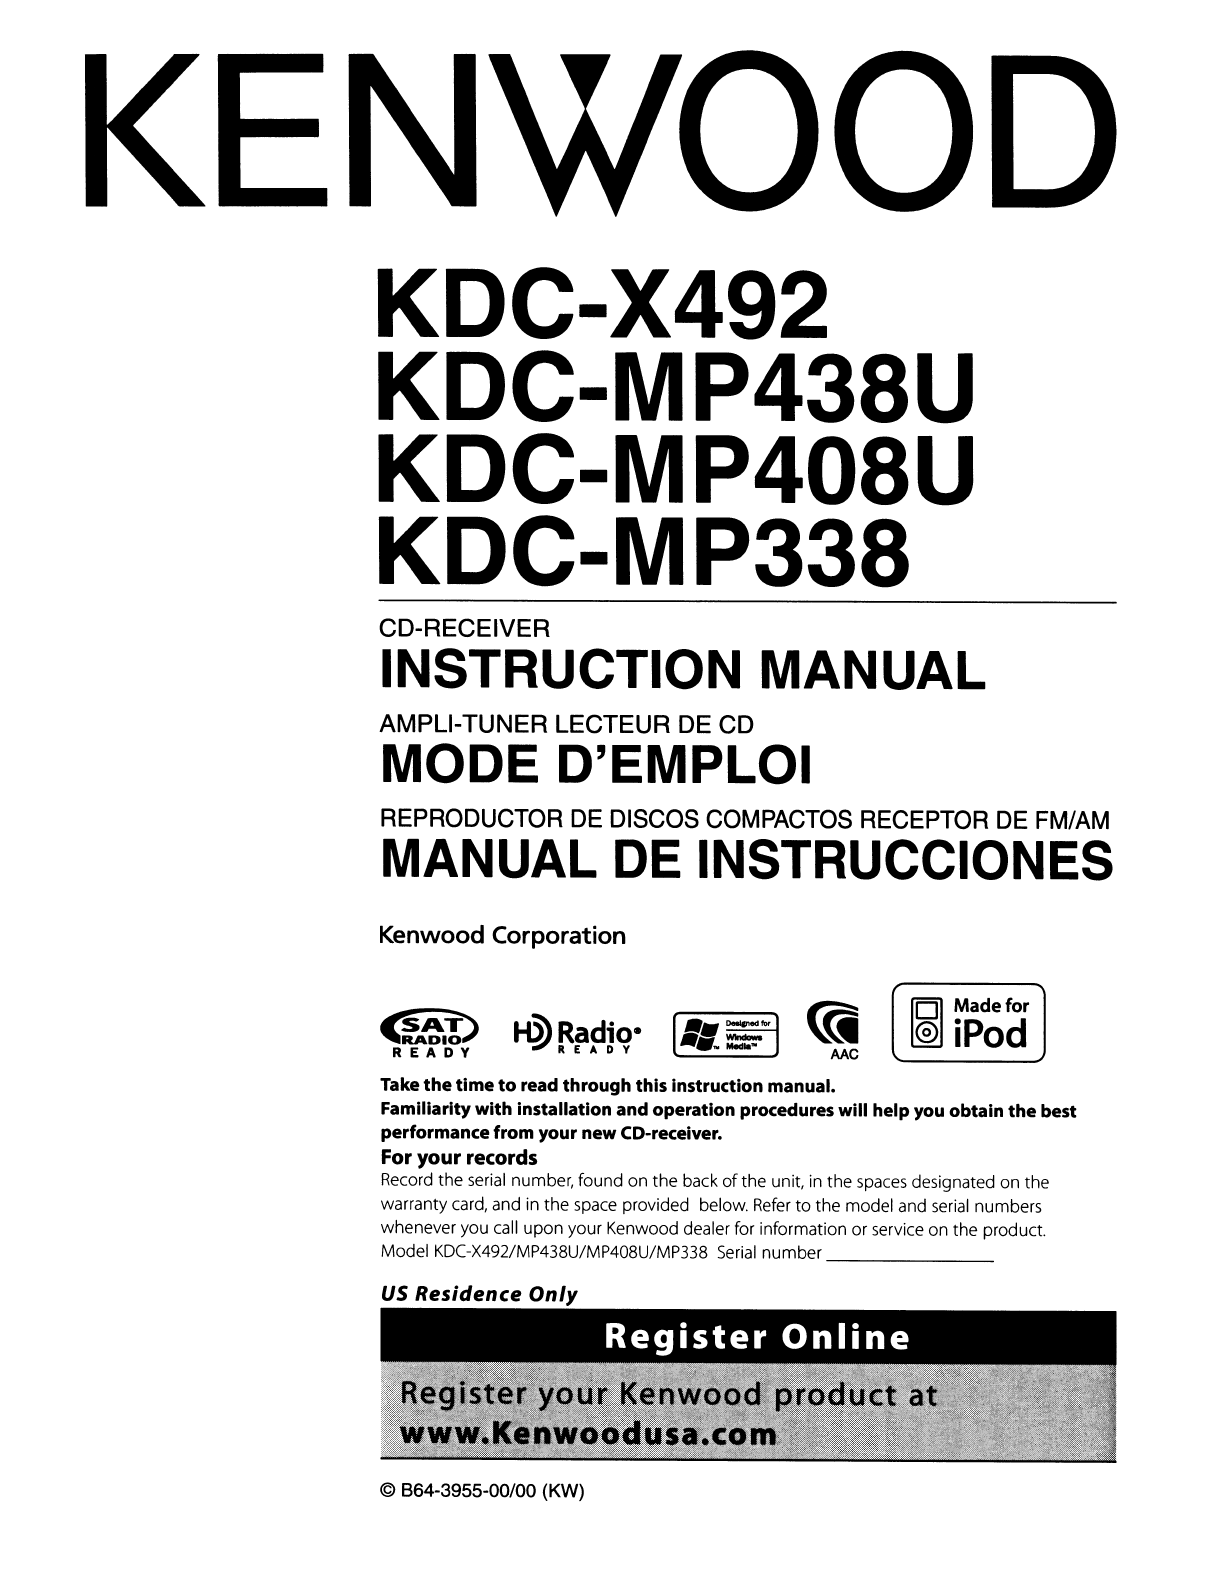 e1d8020b e50b e454 55a5 f7eff258ba43 bg1 kenwood cd player kdc mp338 user guide manualsonline com kenwood kdc-x492 wiring diagram at readyjetset.co